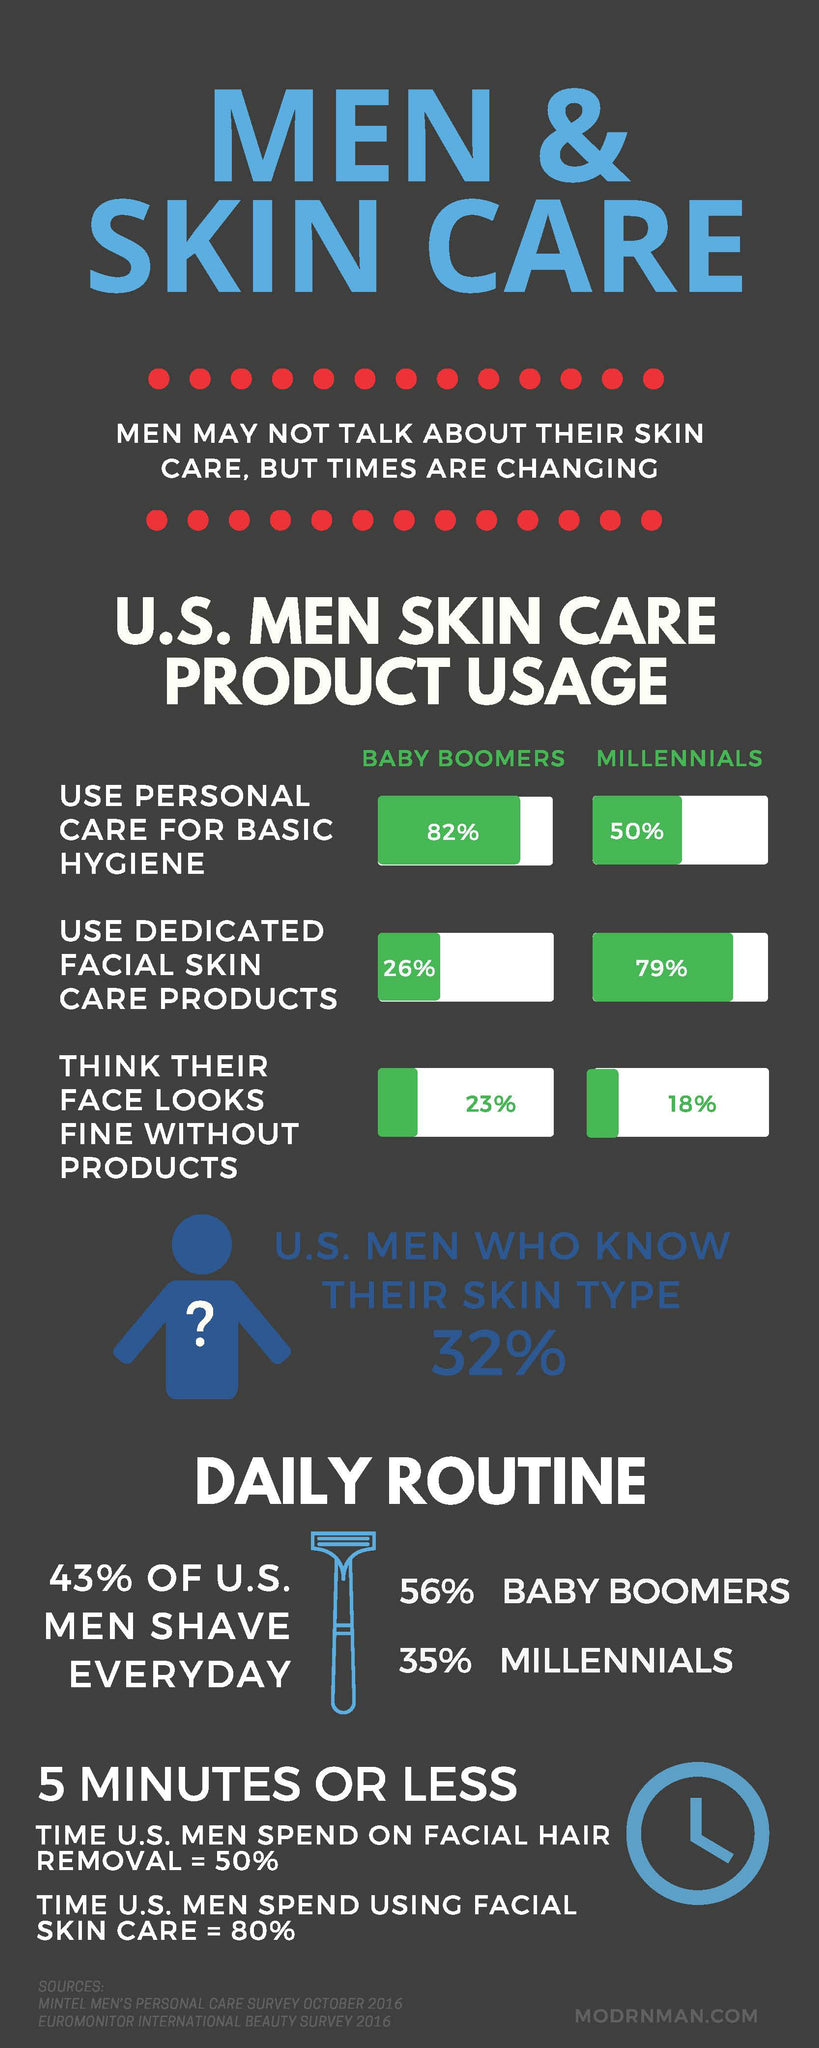 Men and skincare in the U.S.